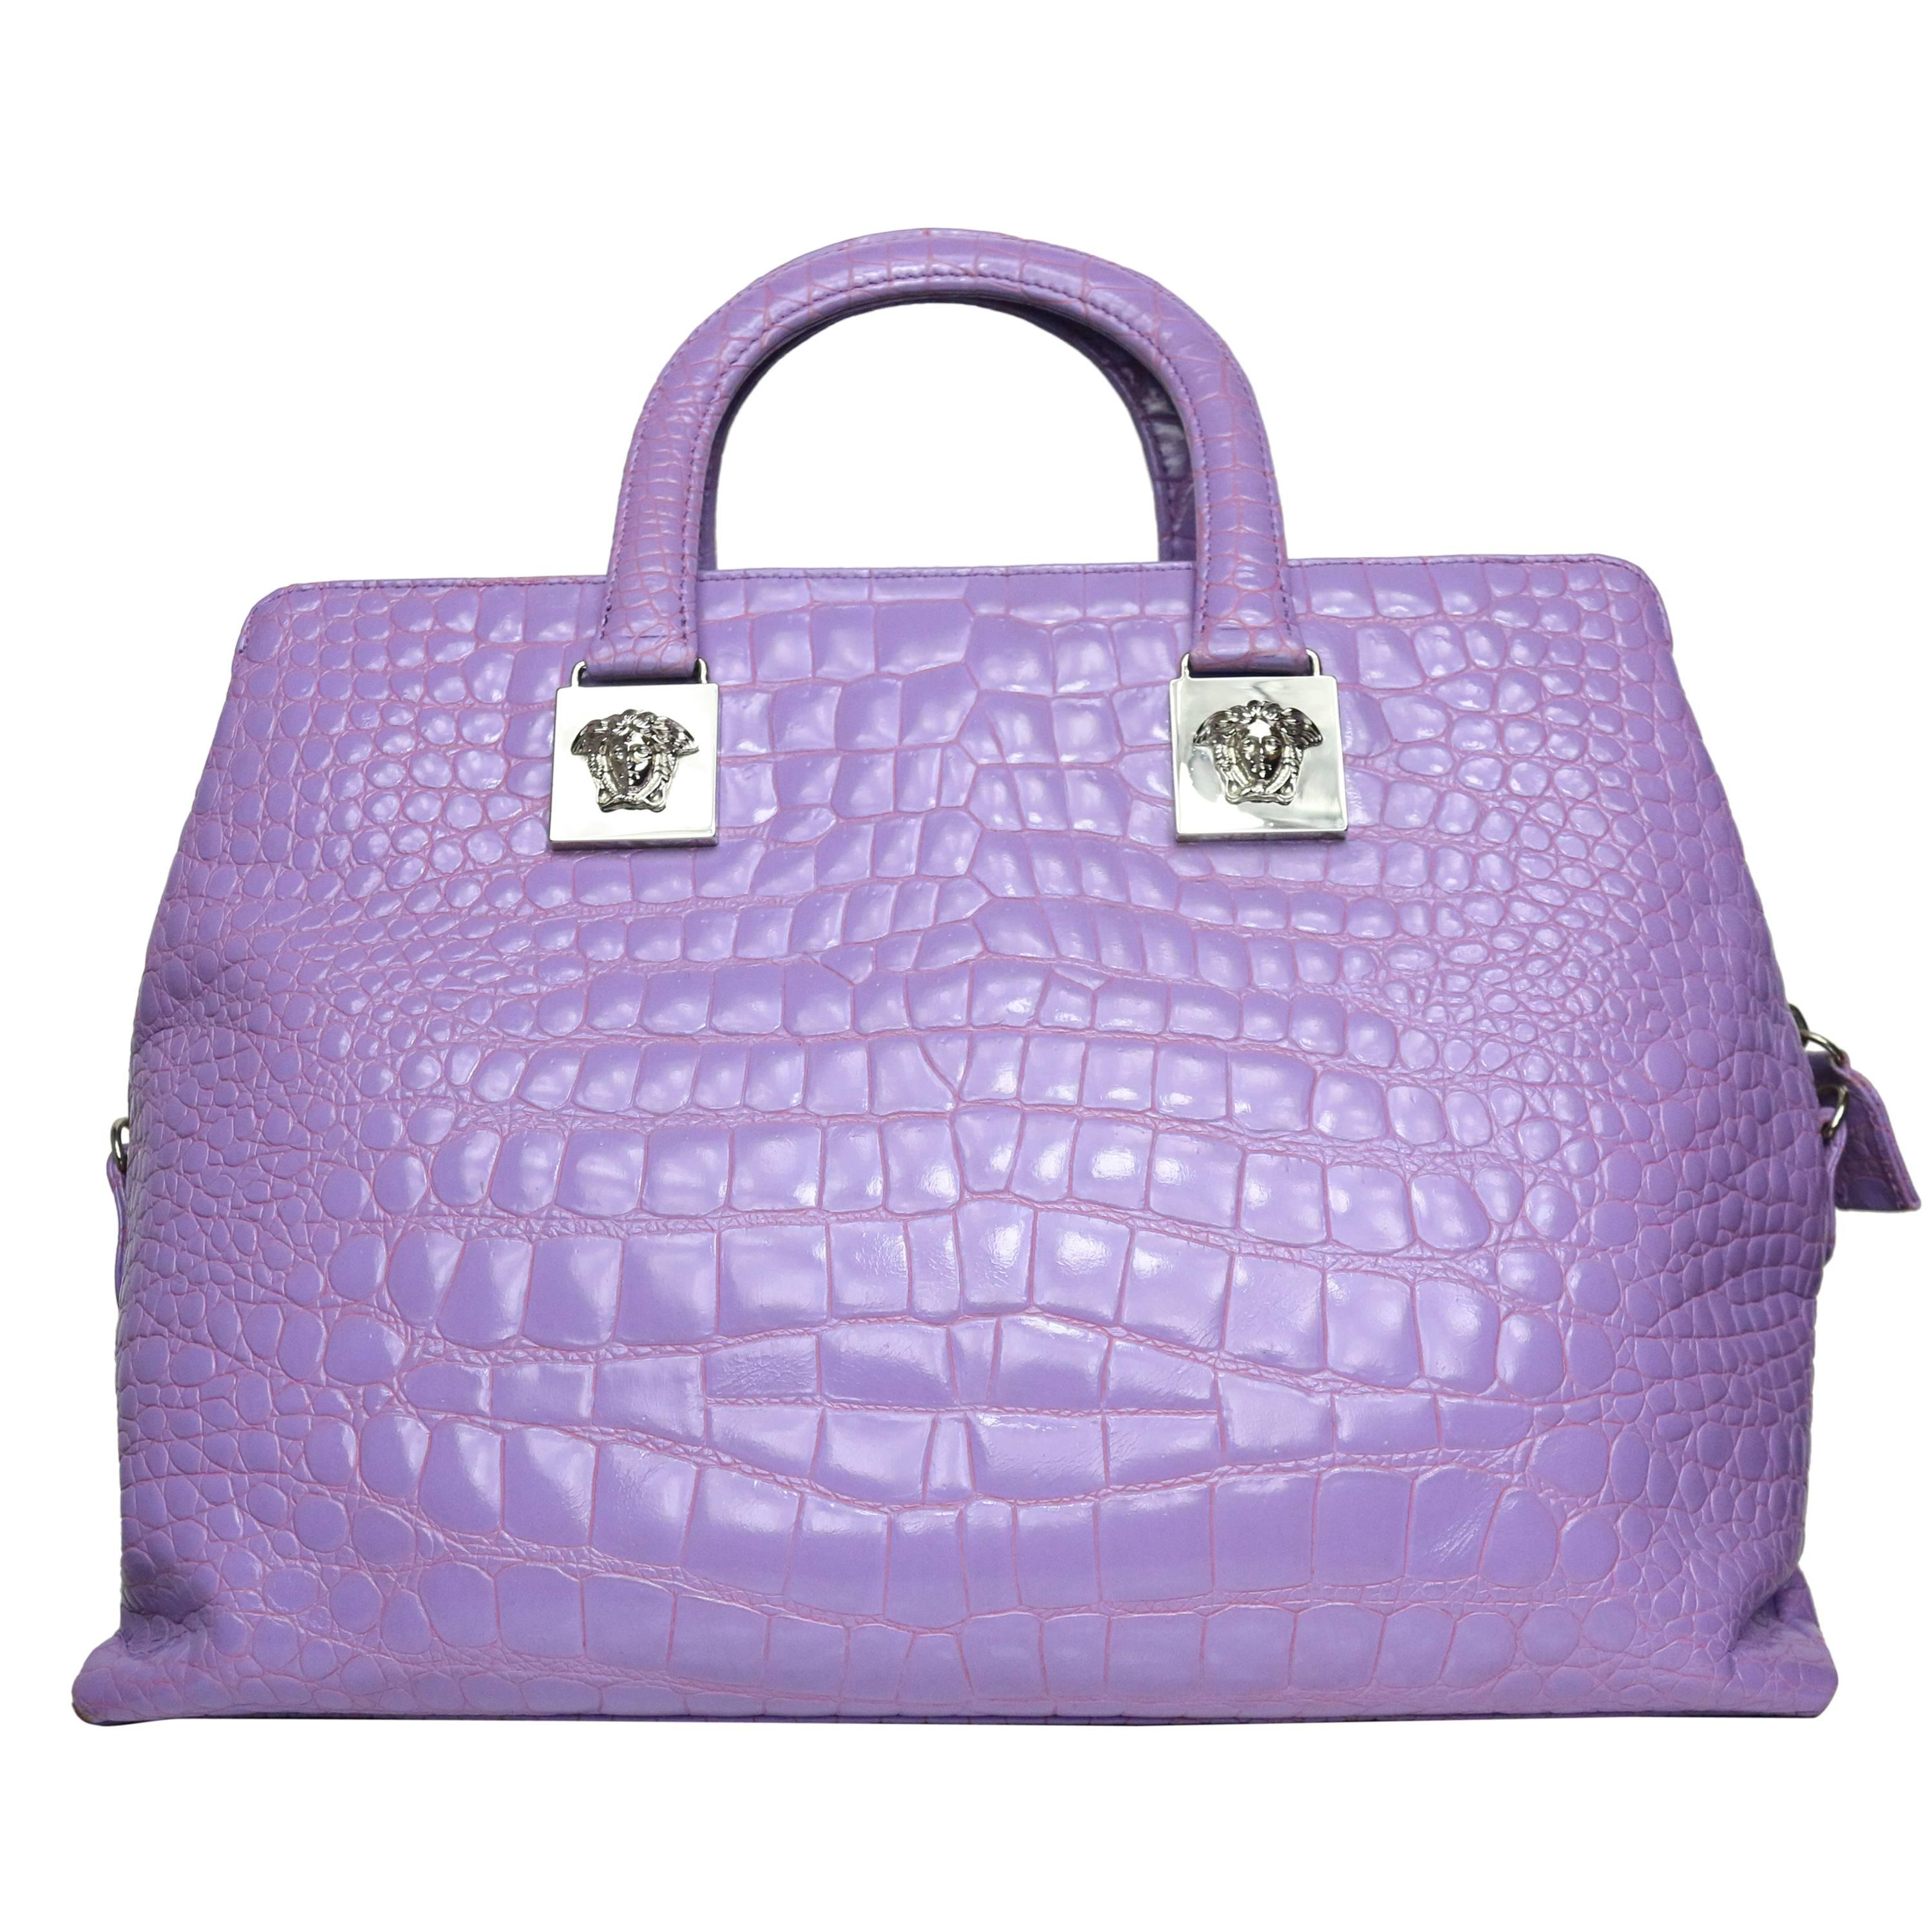 1stdibs Baldinini Purple Suede Box Handbag